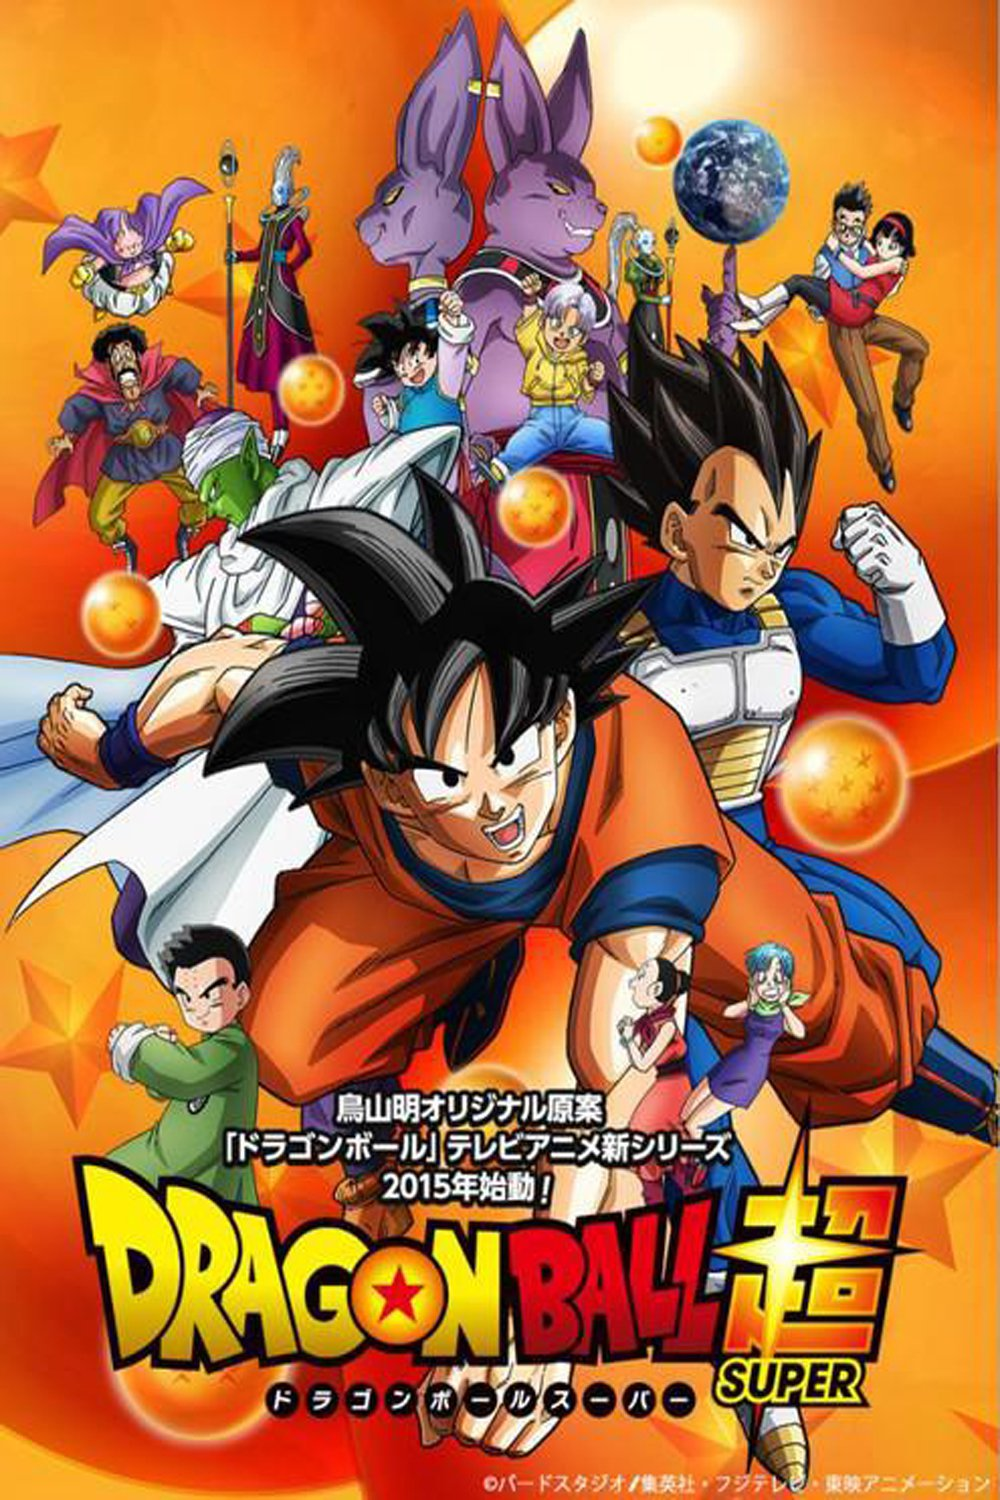 Dragon ball super anime tube tv